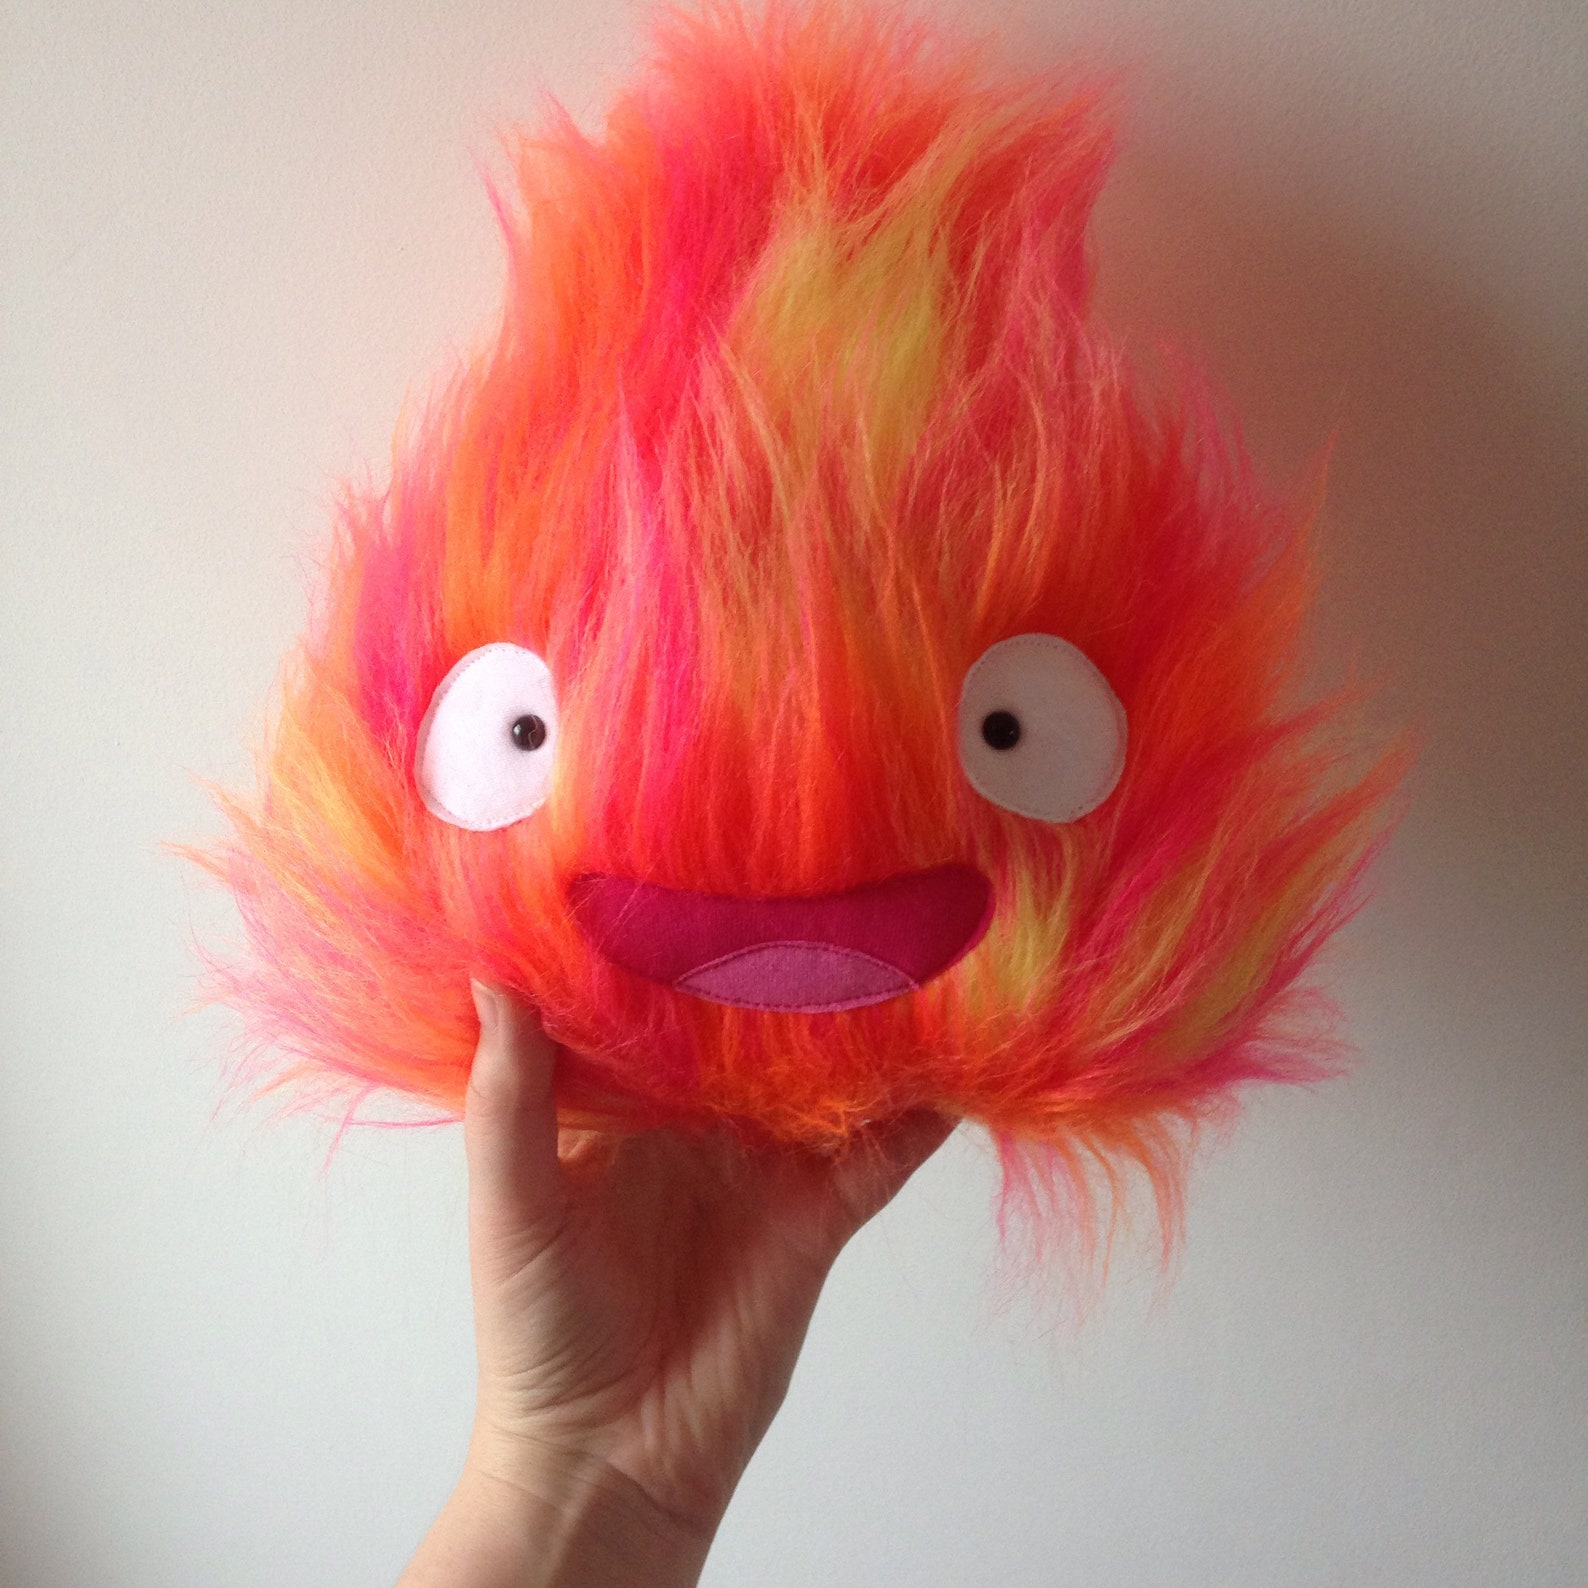 Calcifer Plushie